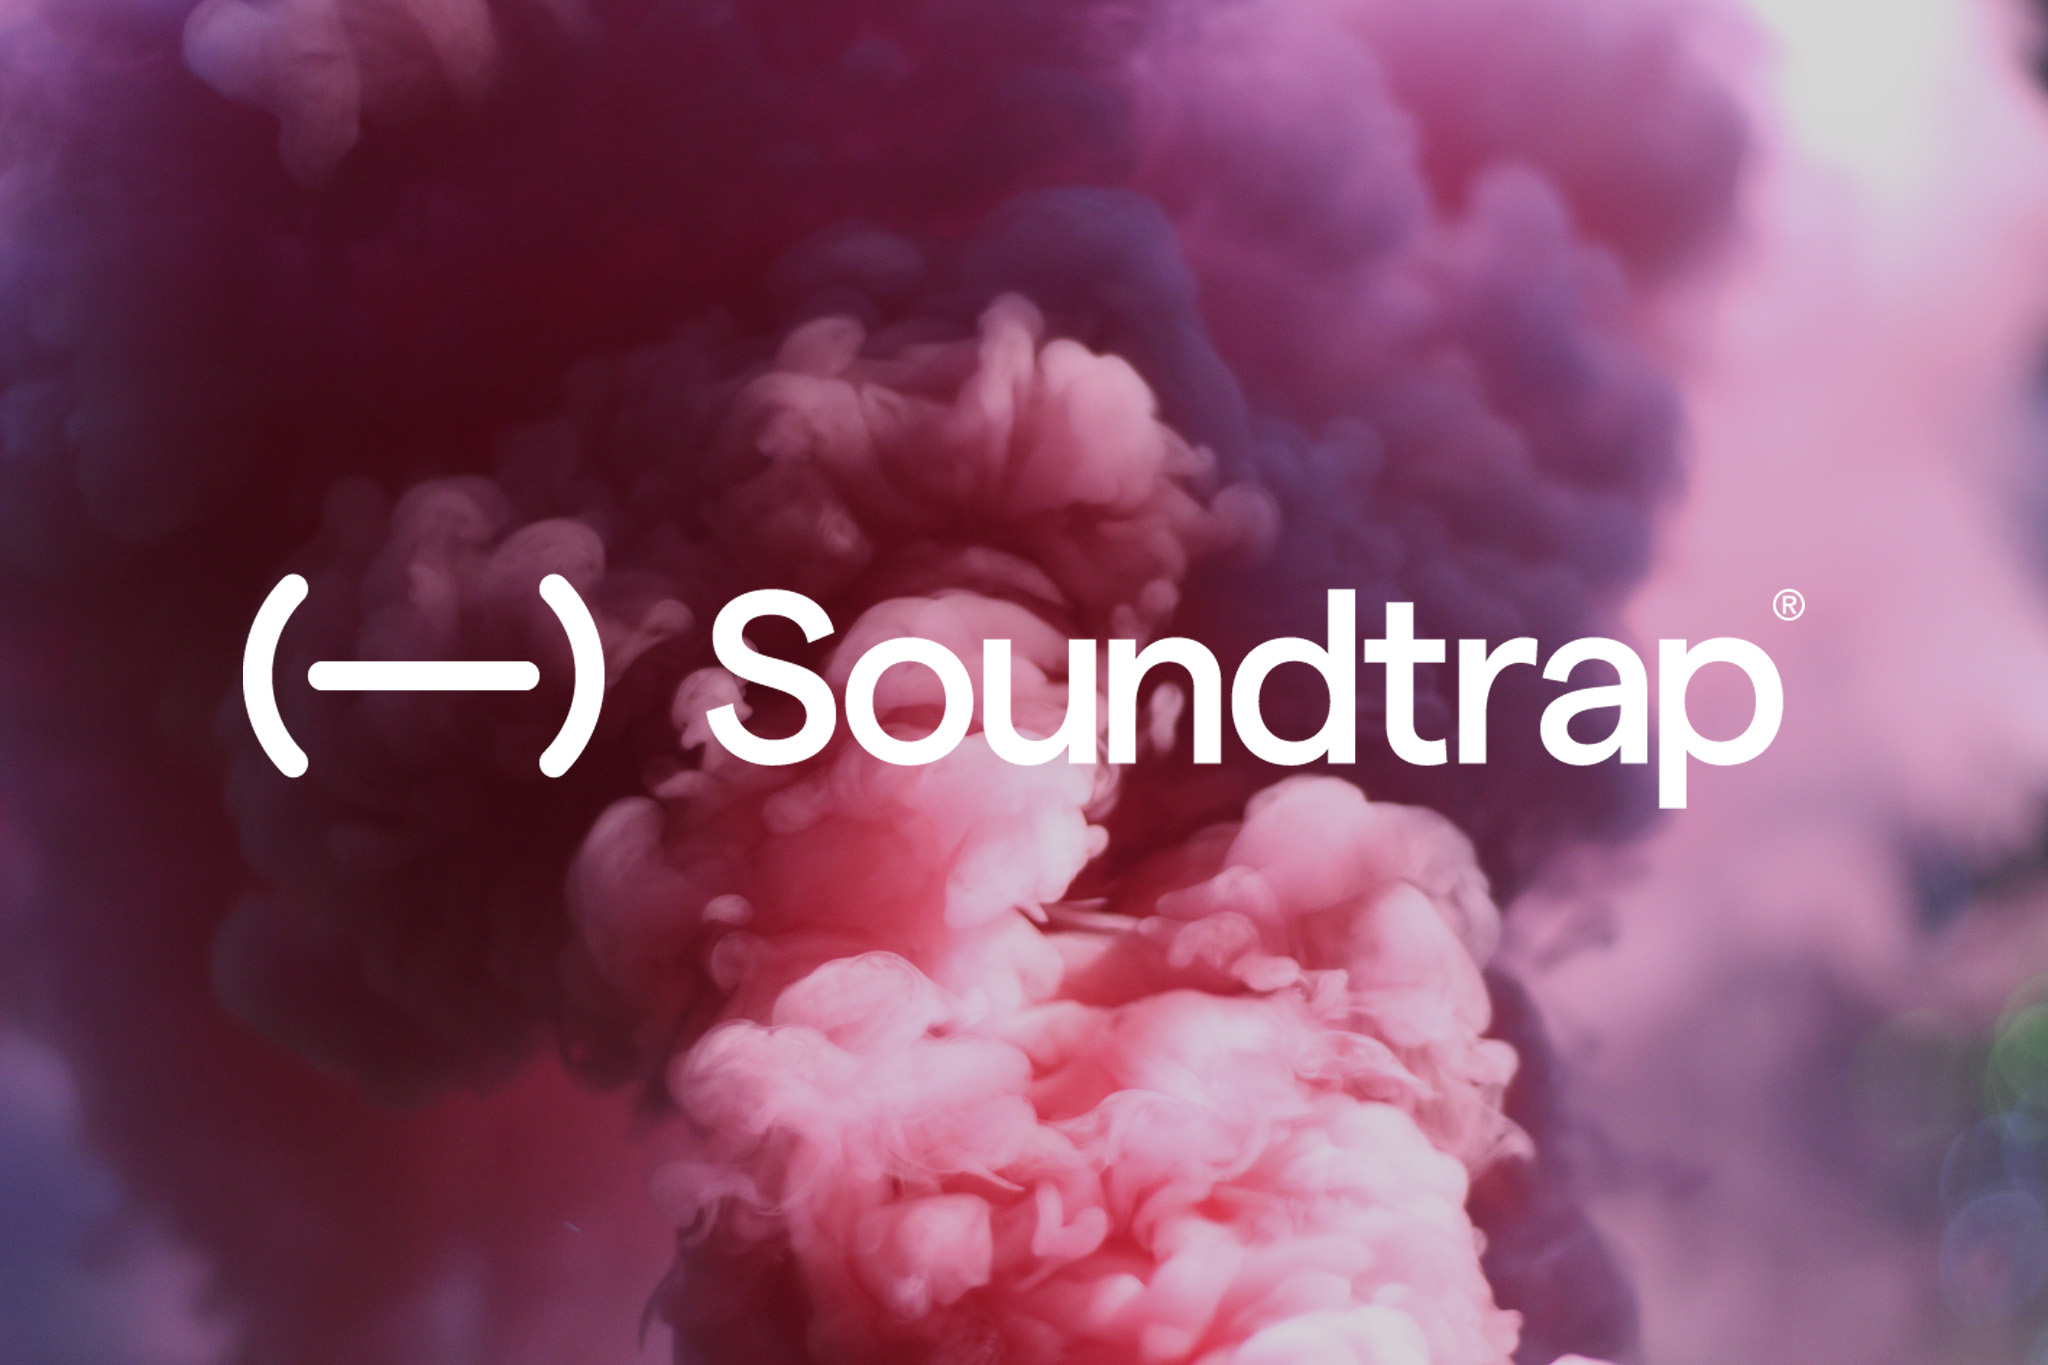 Soundtrap - Make music online